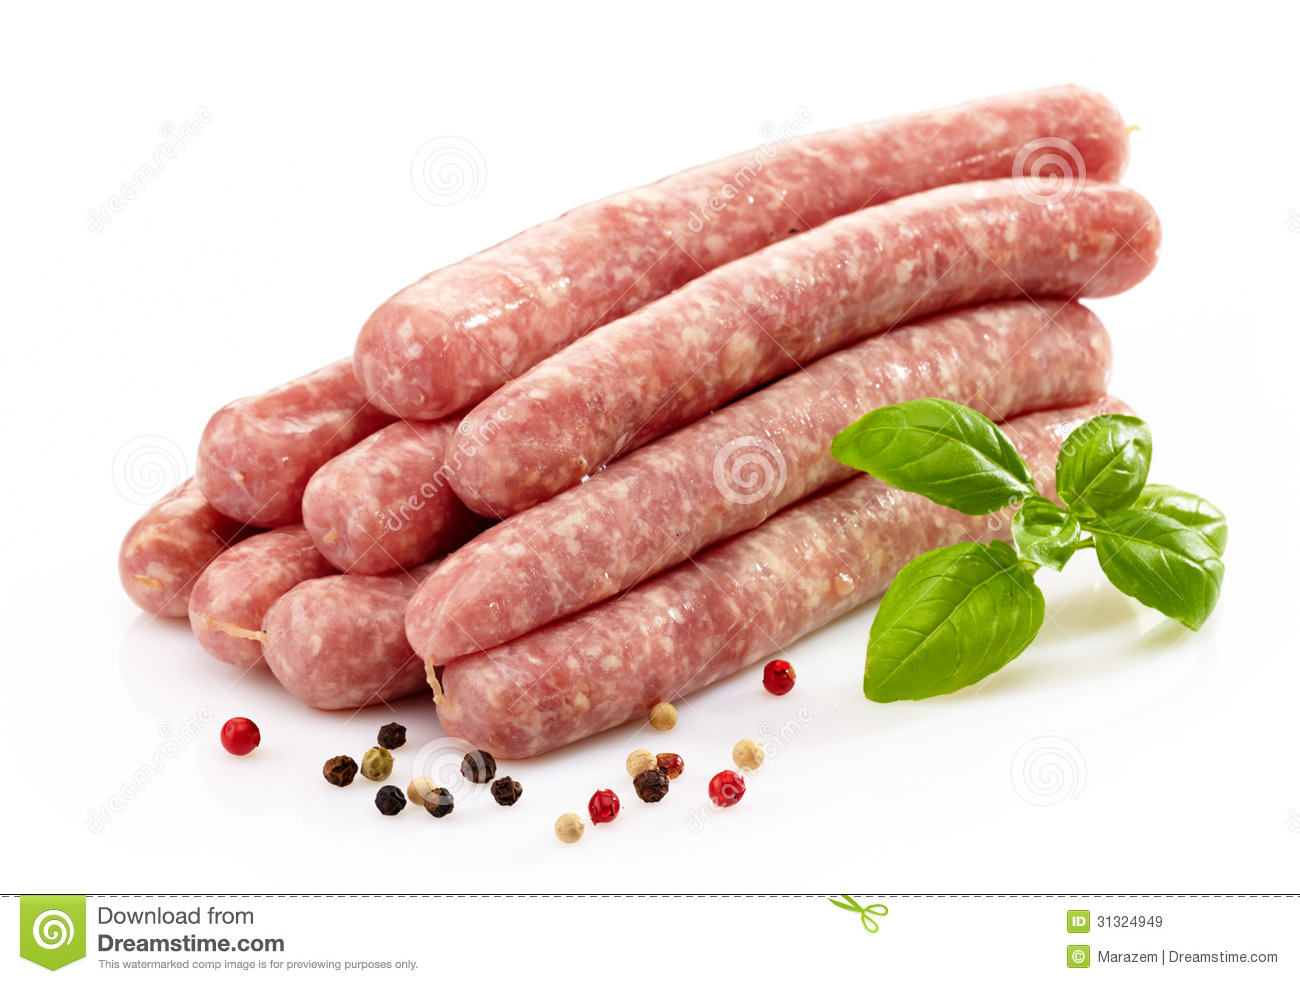 fresh ground pork sausage food republic 12oz ground pork sausage